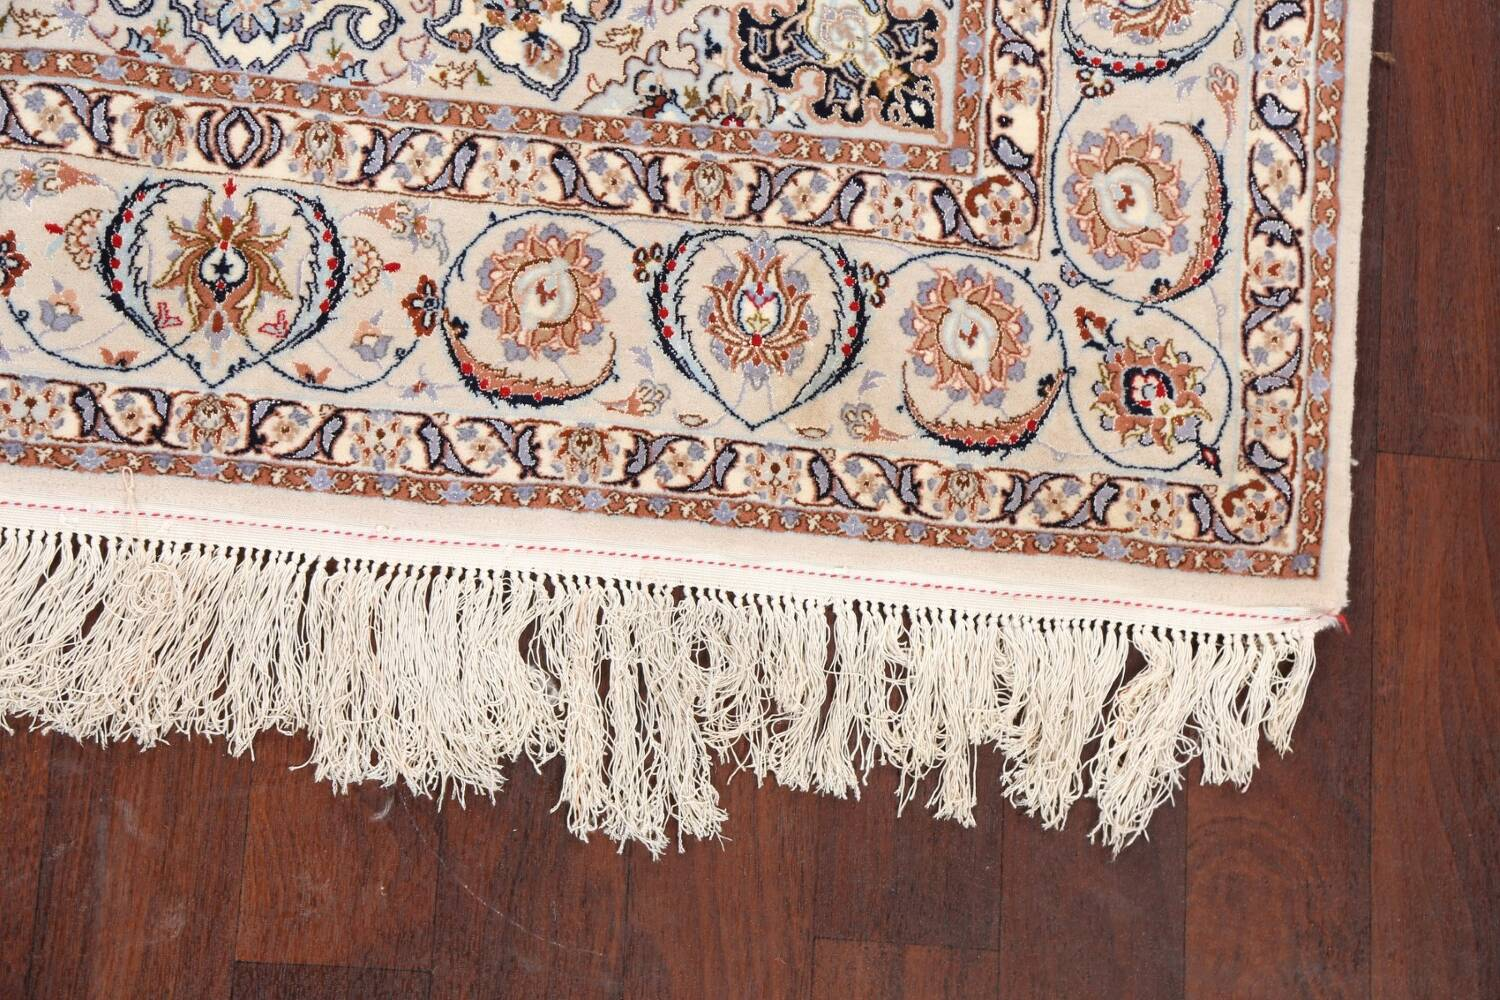 100% Vegetable Dye Floral Isfahan Persian Area Rug 5x8 image 6